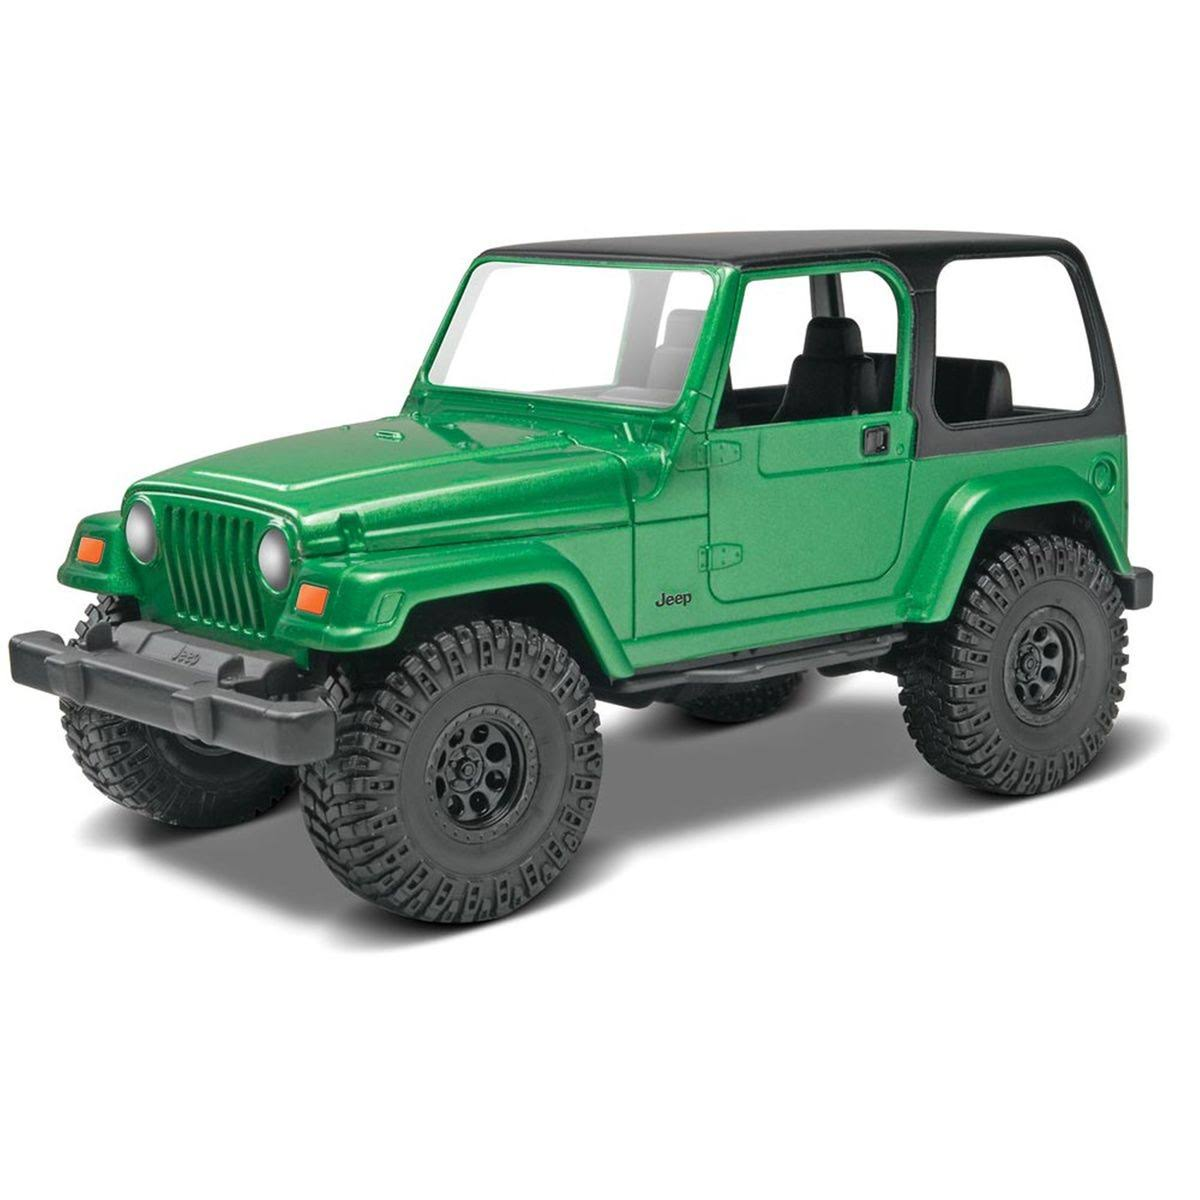 Revell Rmx1636 Jeep Wrangler Rubicon Model Kit - 1:25 Scale